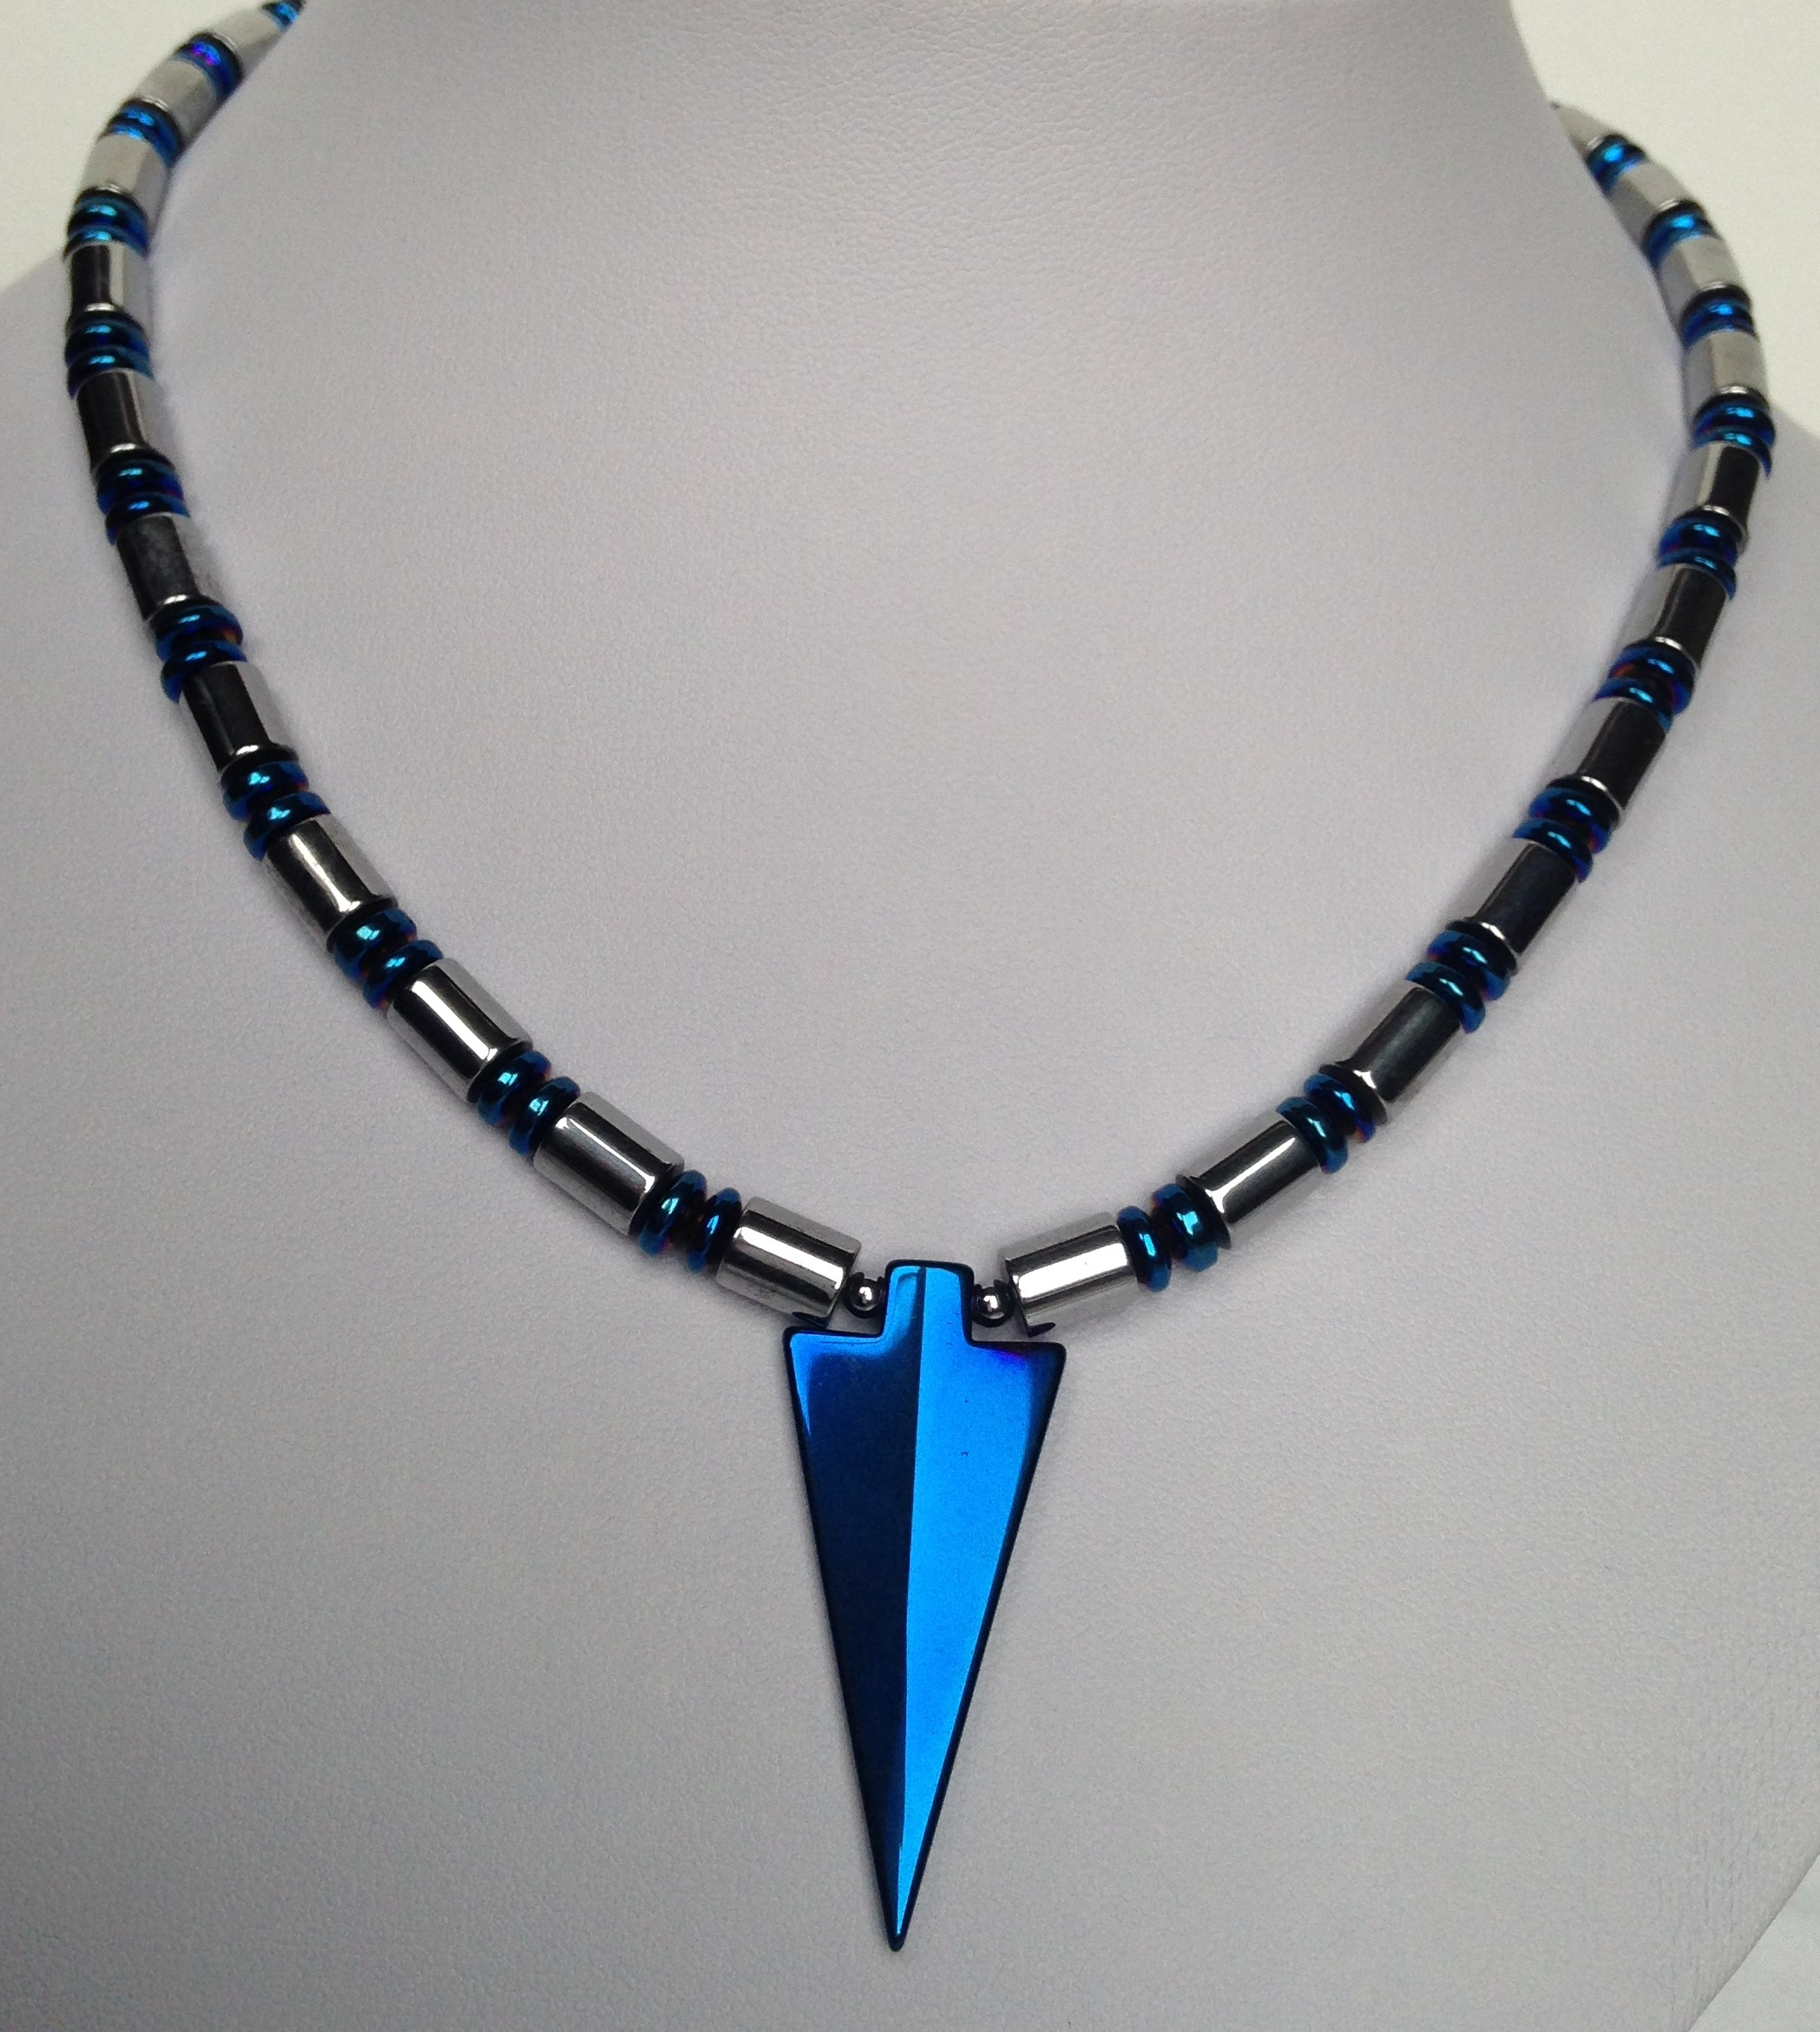 jewellery faceted hematite gemstone delicate facettiert d timeless haematitkette zart necklace schmuckwerk jewelry